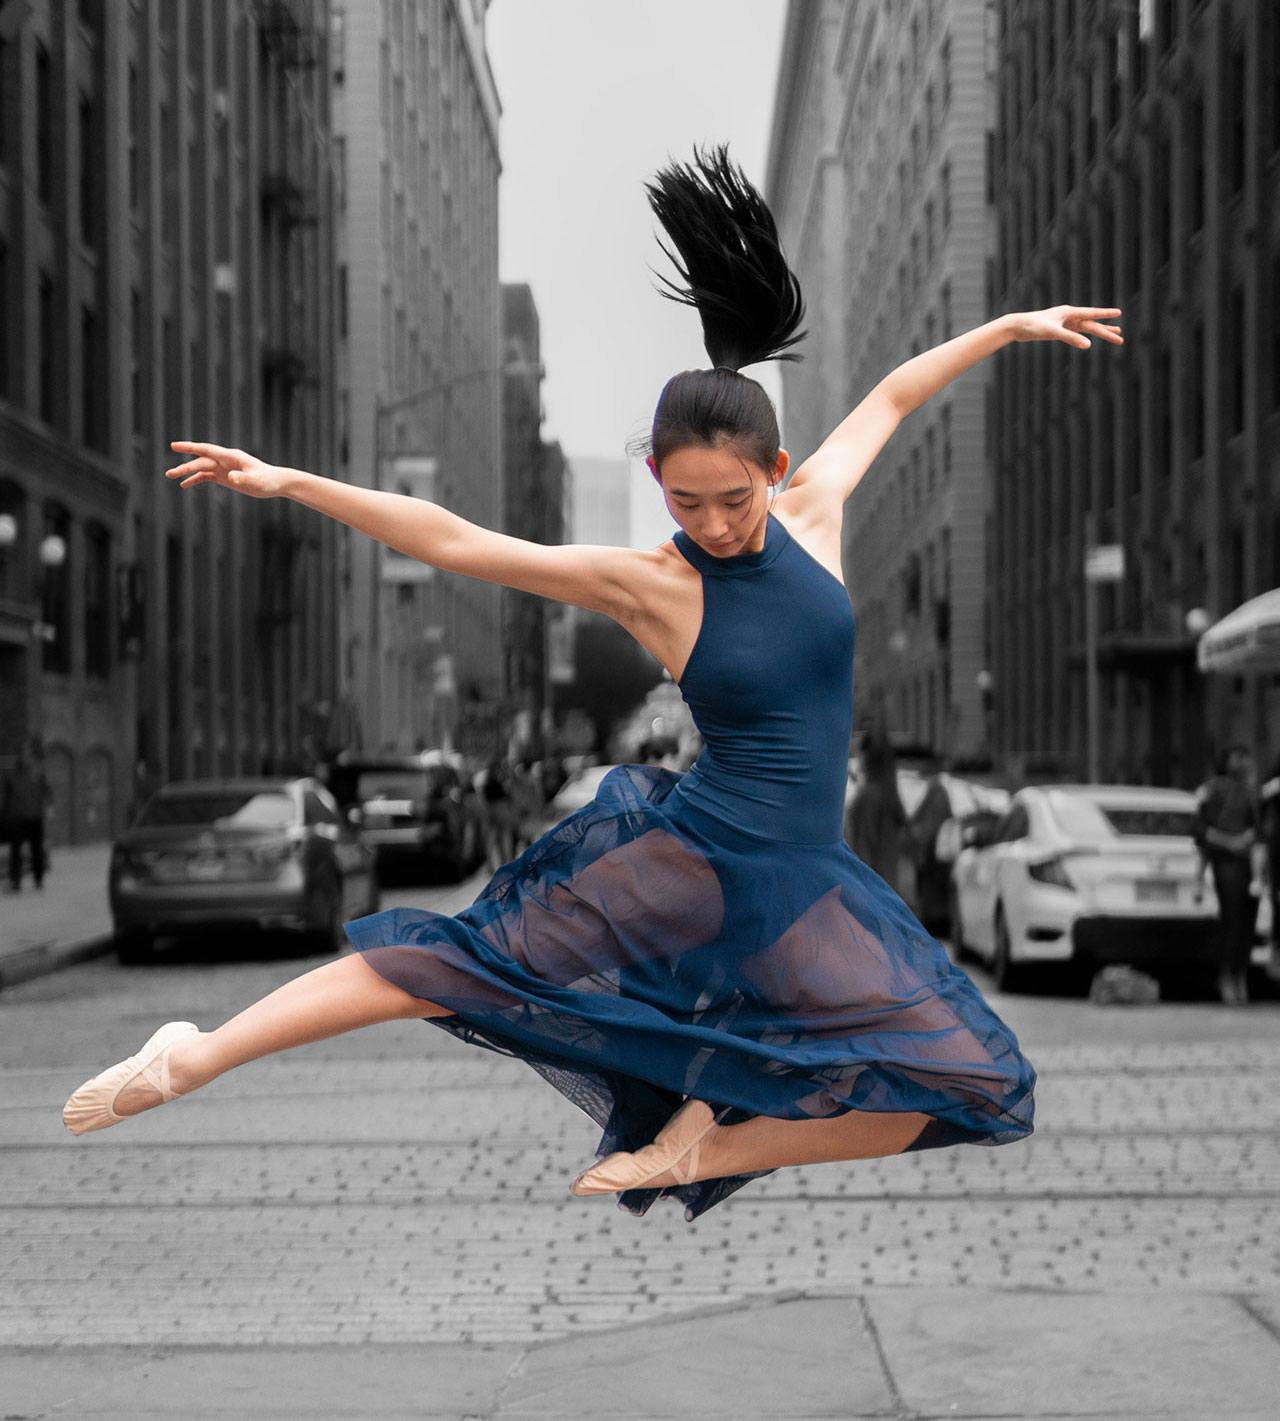 Dancer leaps in the air in the middle of a cobblestone street in Brooklyn.